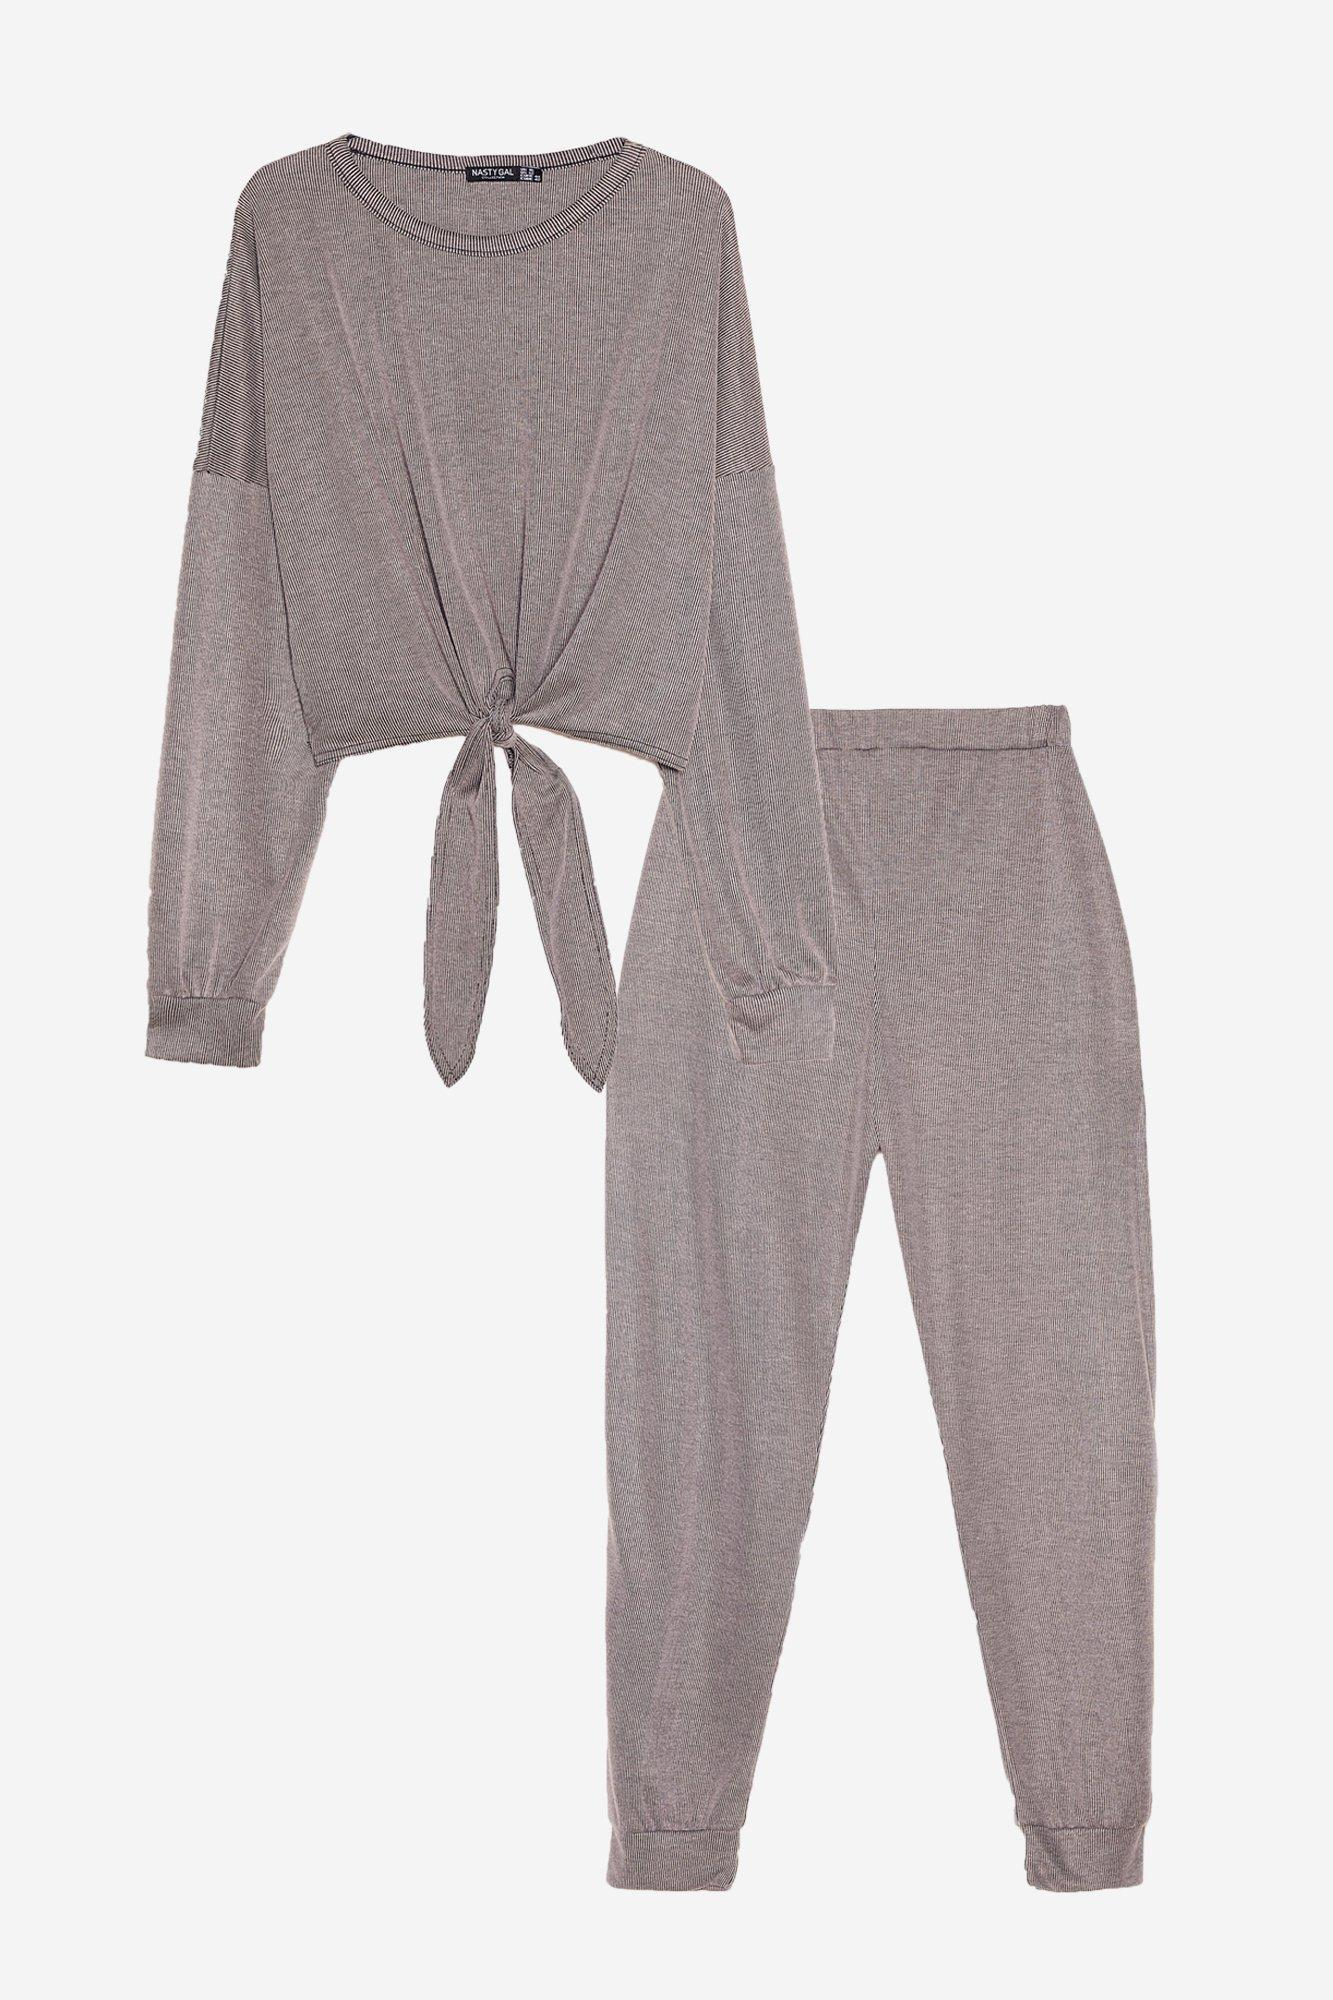 Tie Miss You Baby Plus Ribbed Top and Jogger Set 11